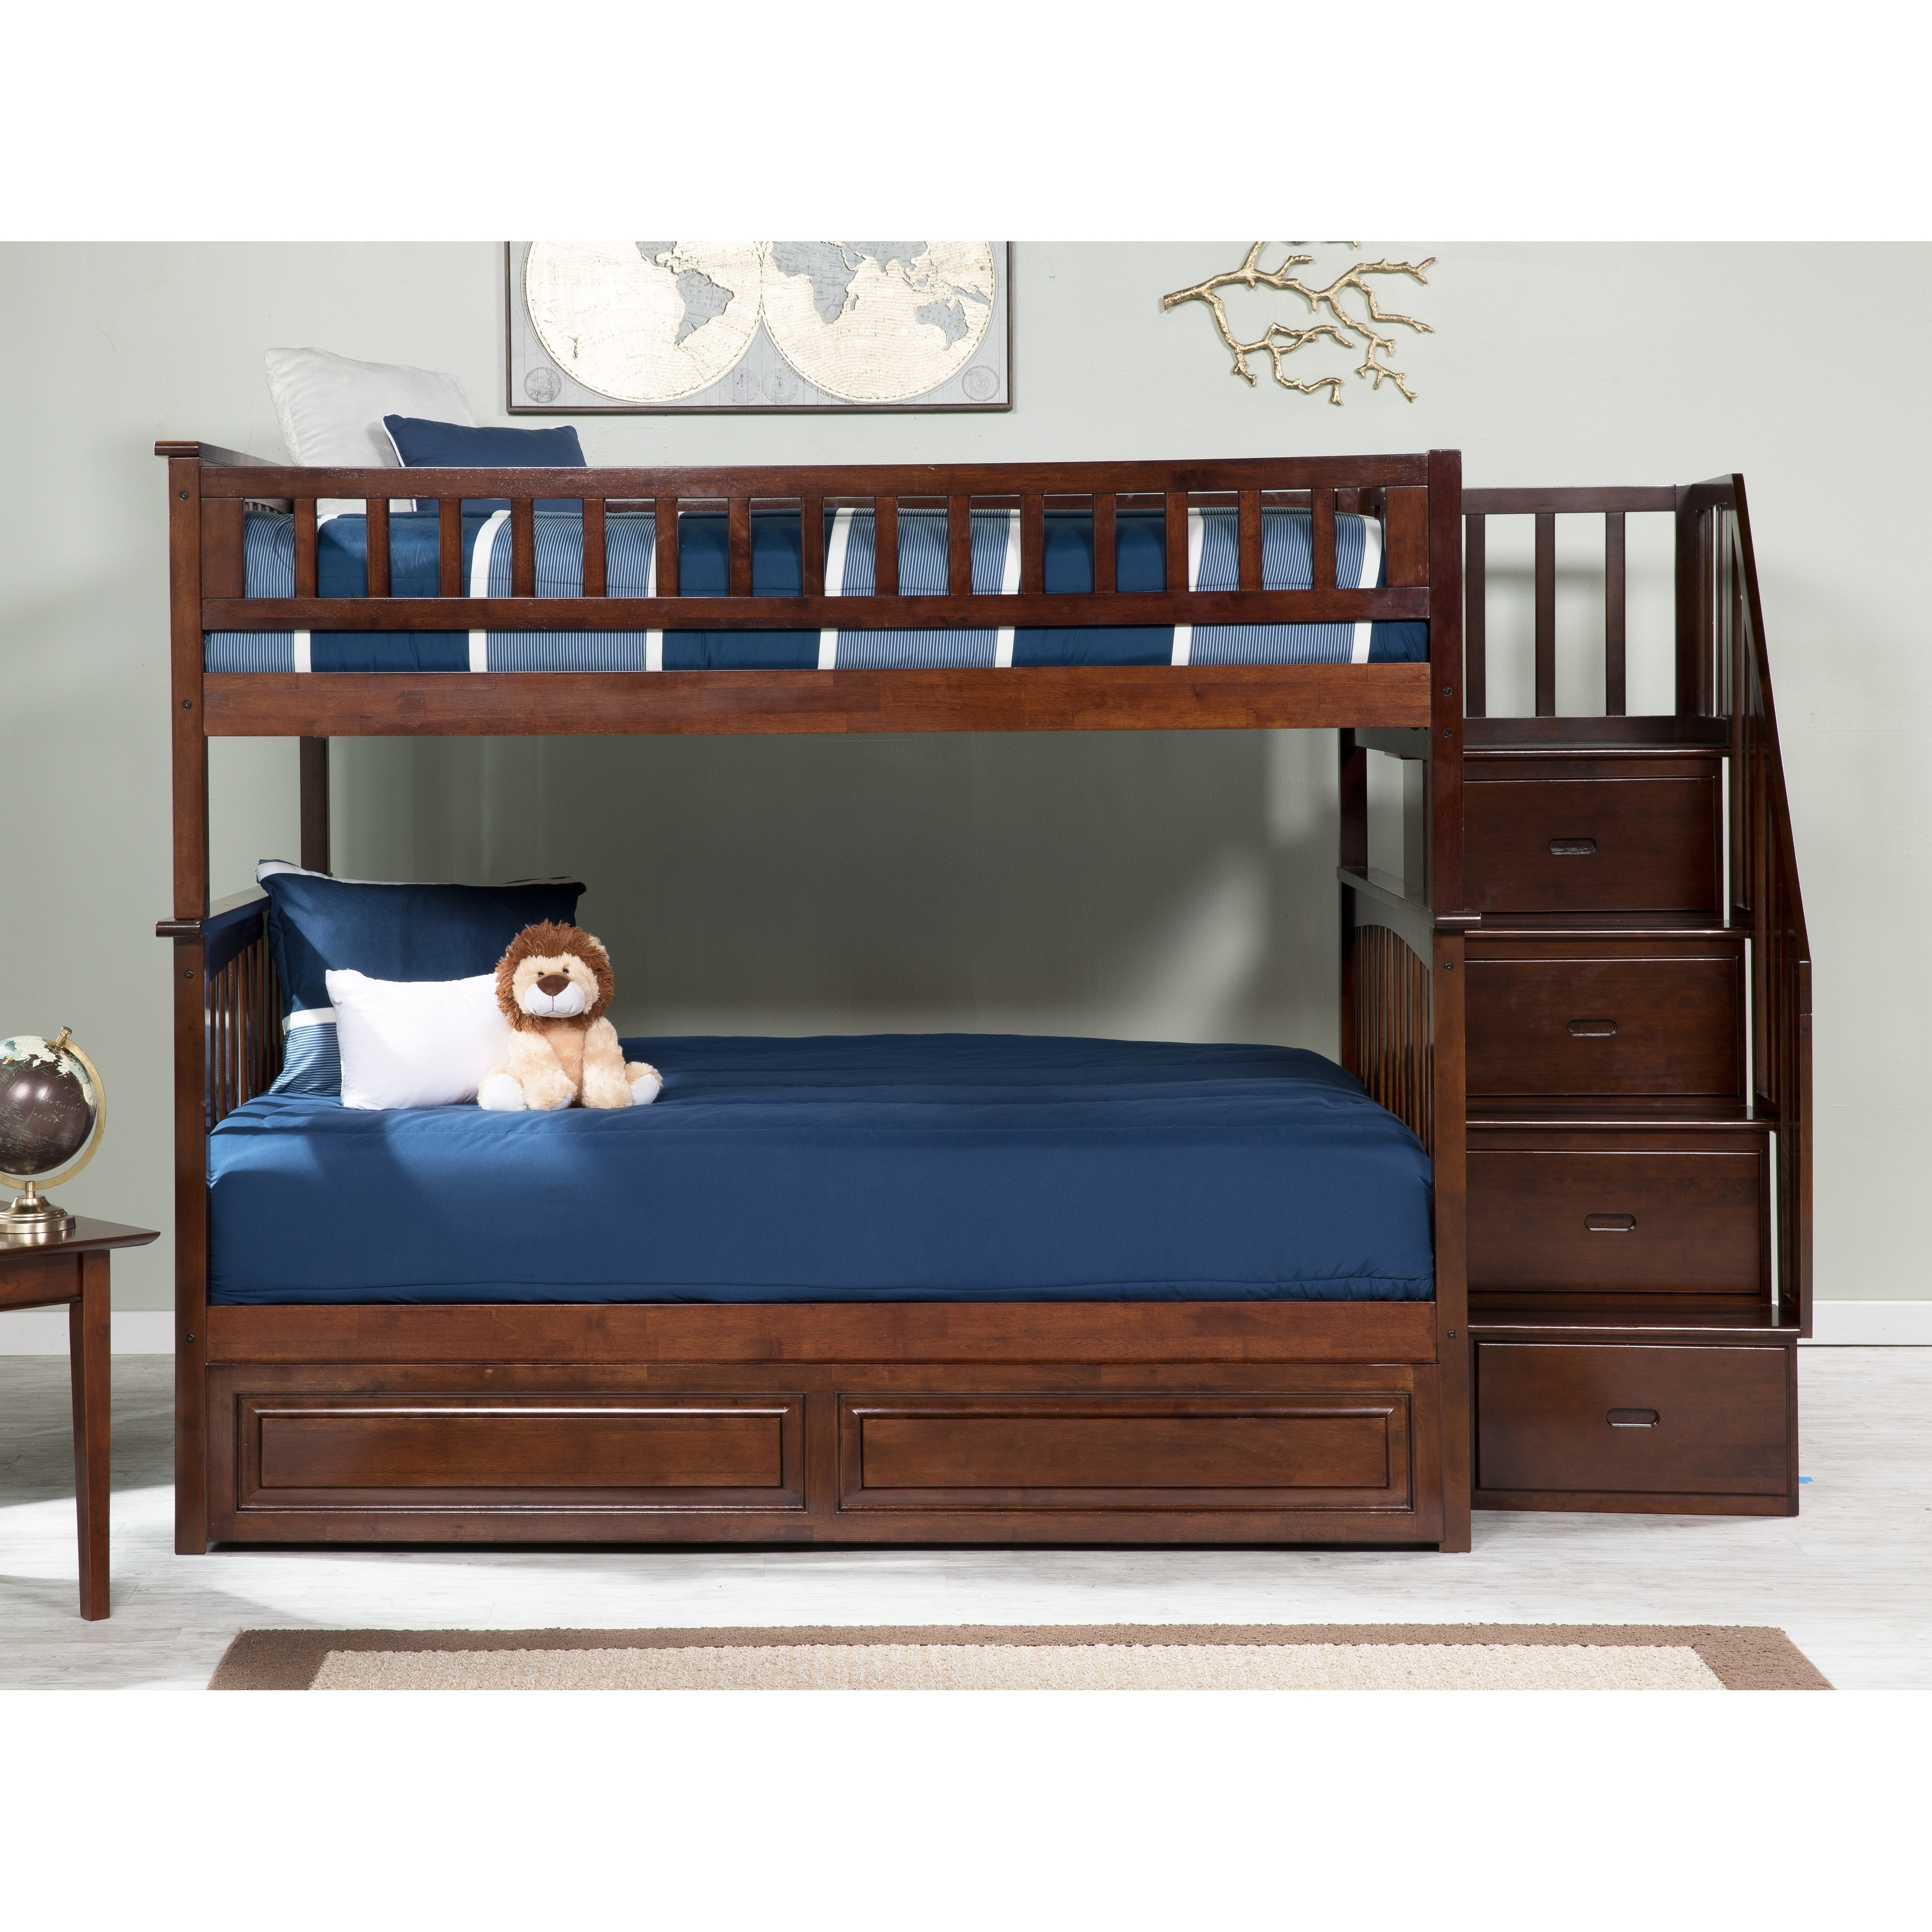 Columbia Staircase Bunk Bed Full Over Full With Twin Sized Raised Panel Trundle Bed In Walnut Overstock 13049017